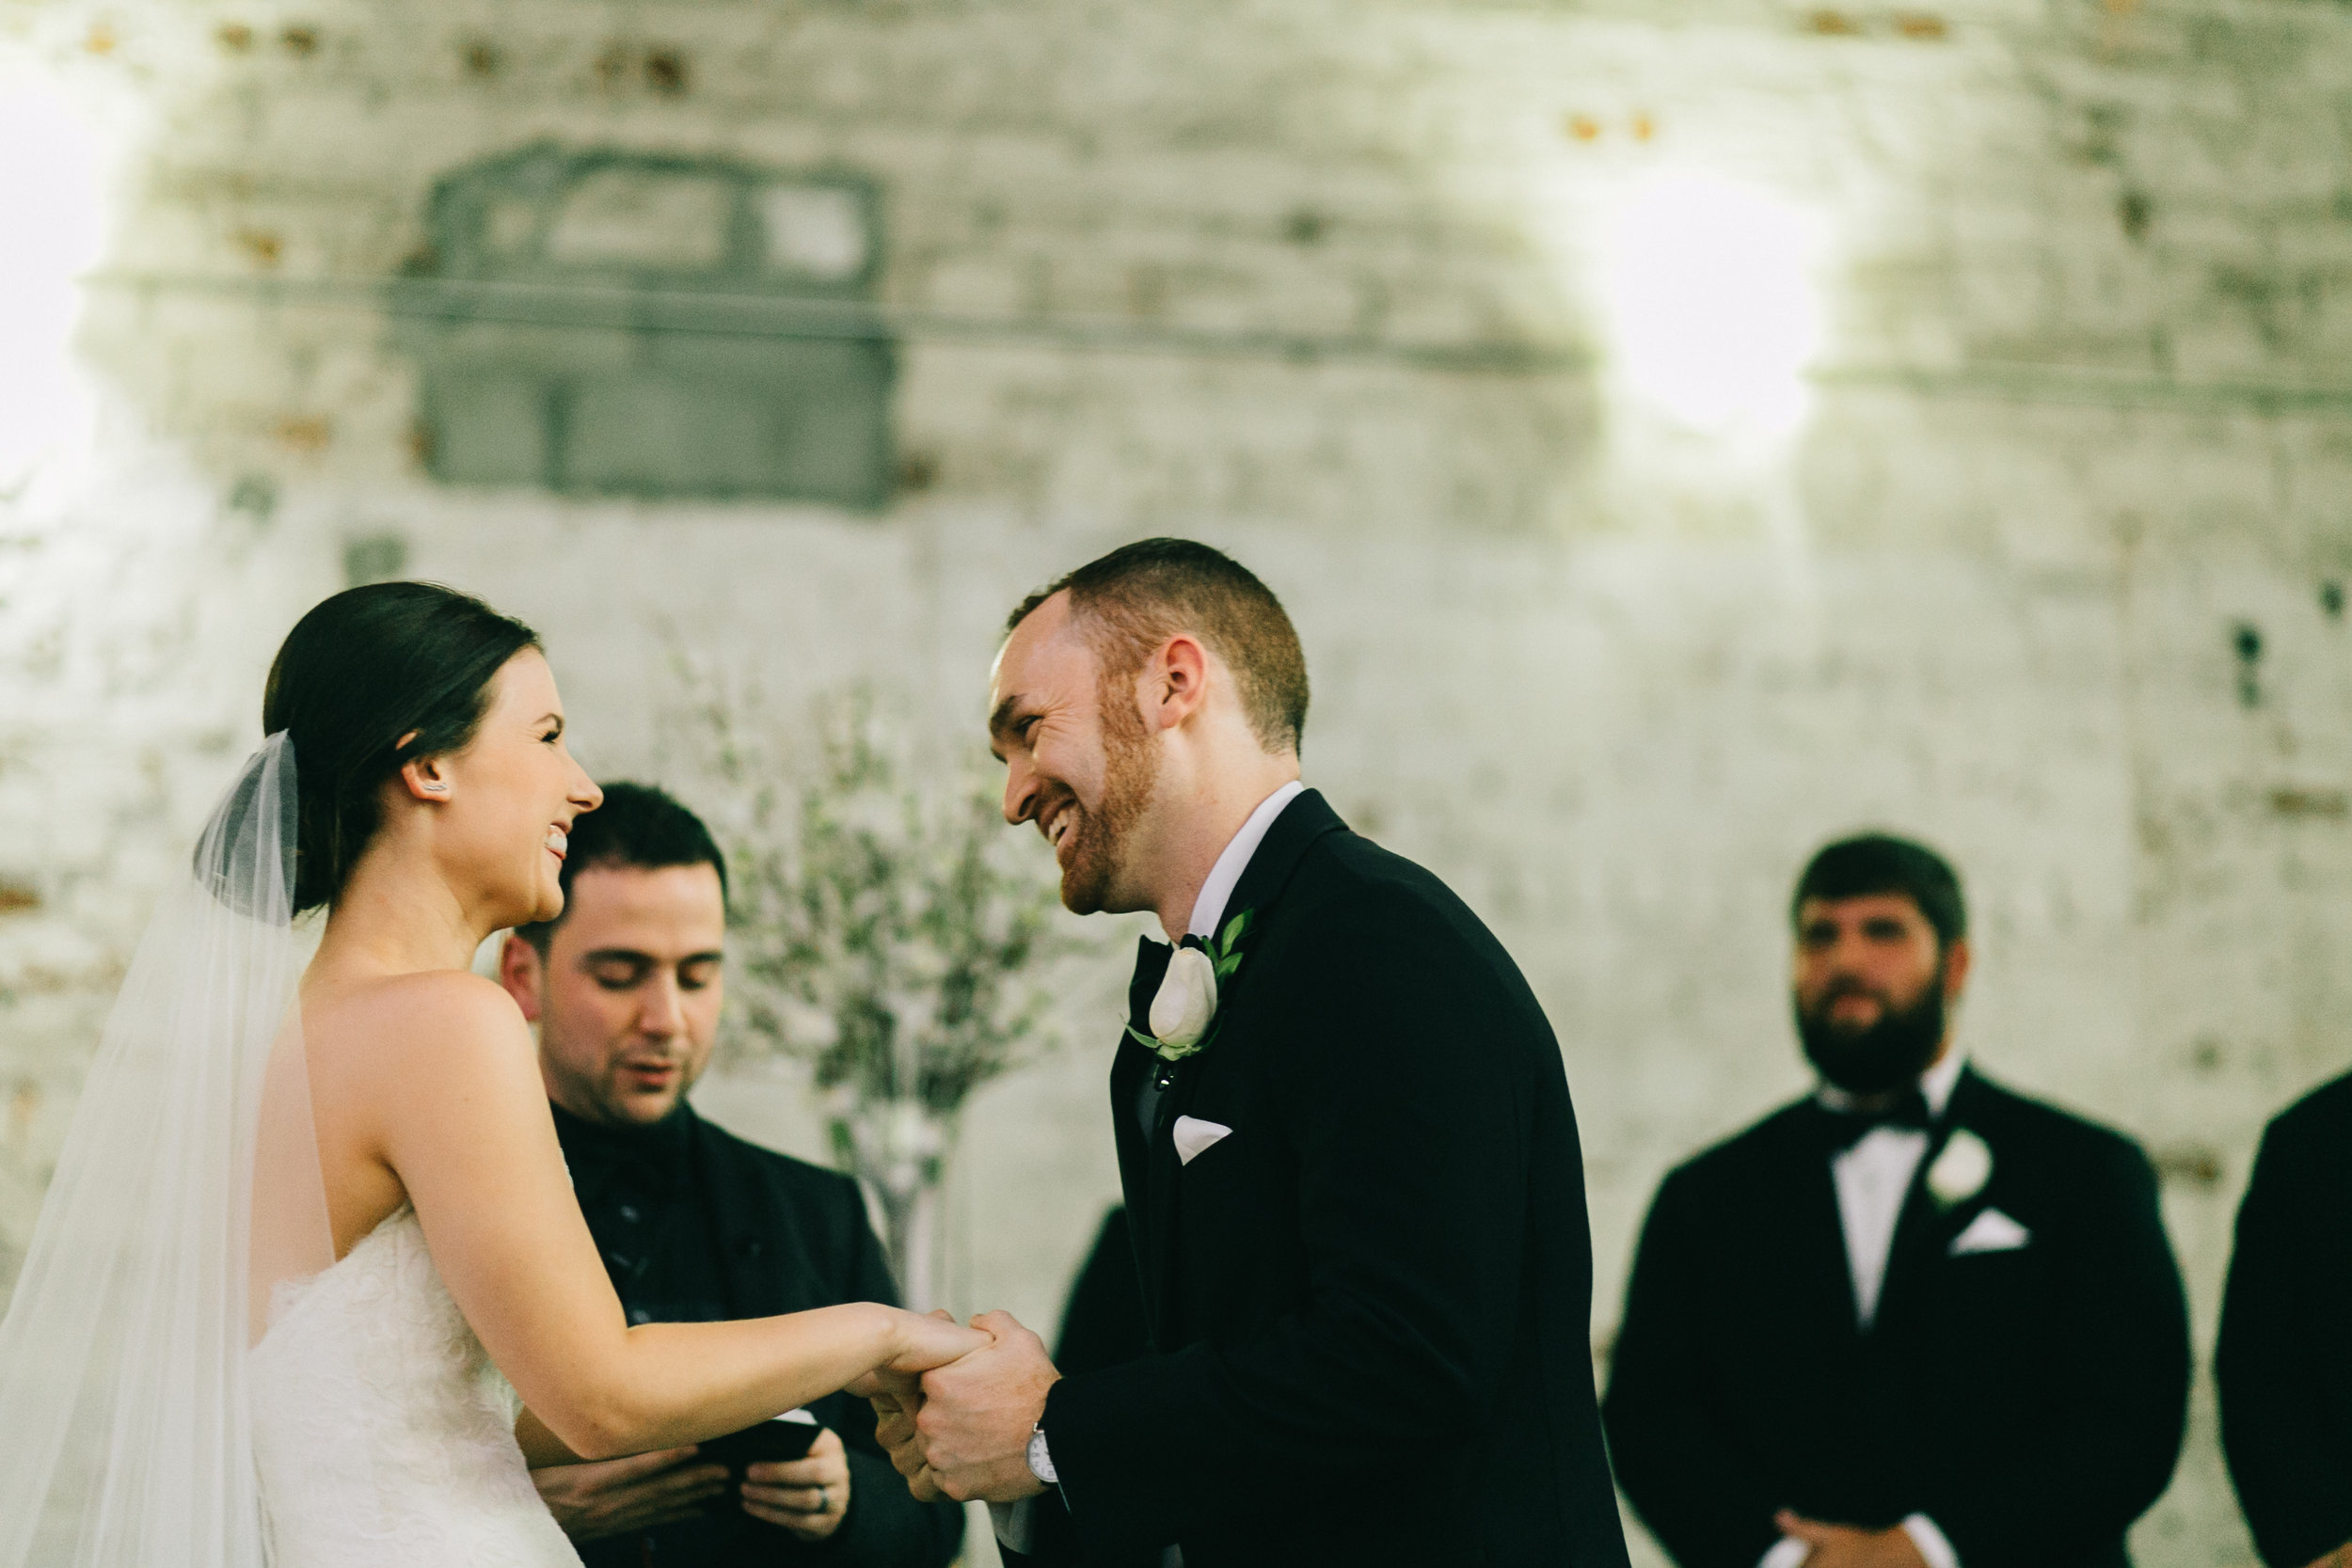 Tampa Industrial wedding at the Rialto Theater_096.jpg